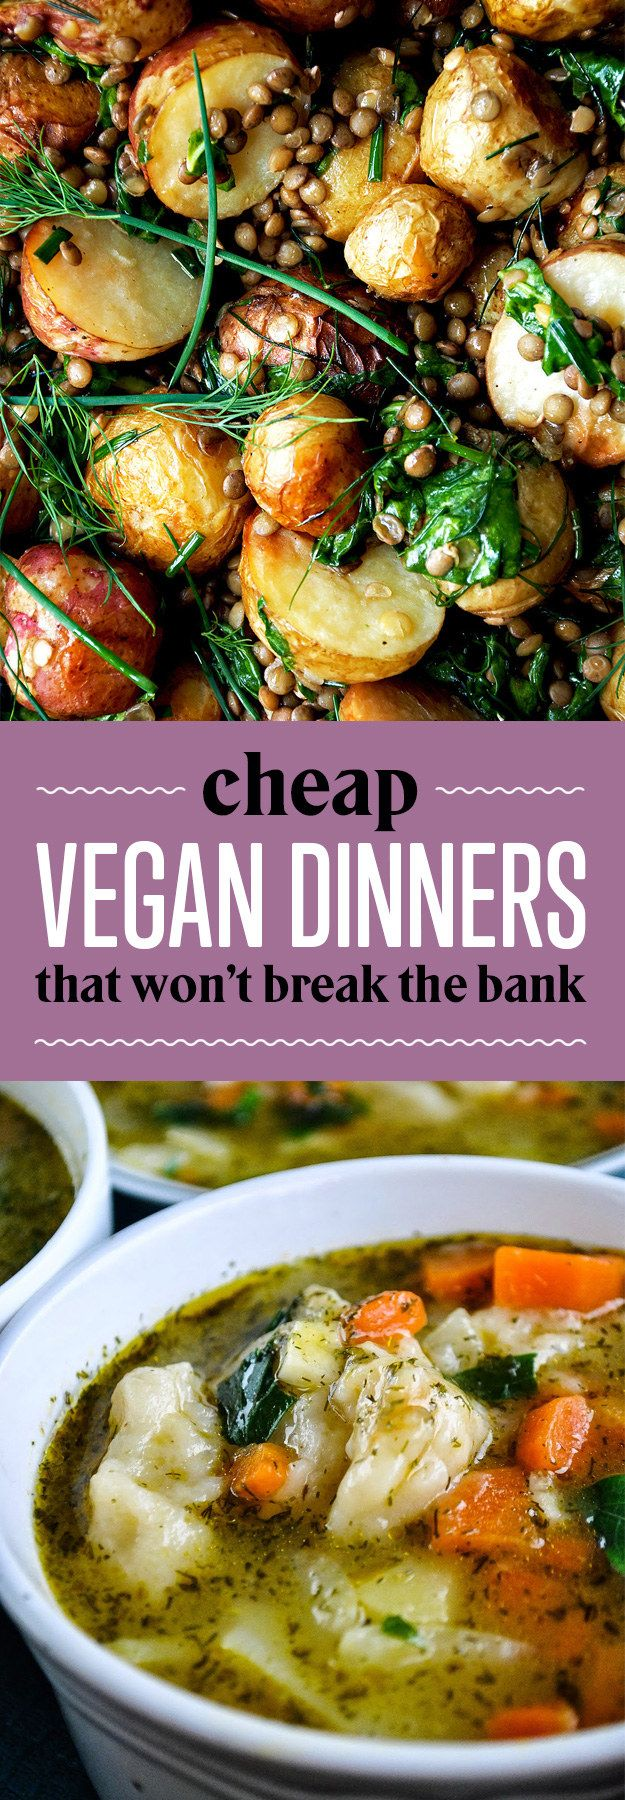 26 Cheap Vegan Dinners That Won't Break The Bank